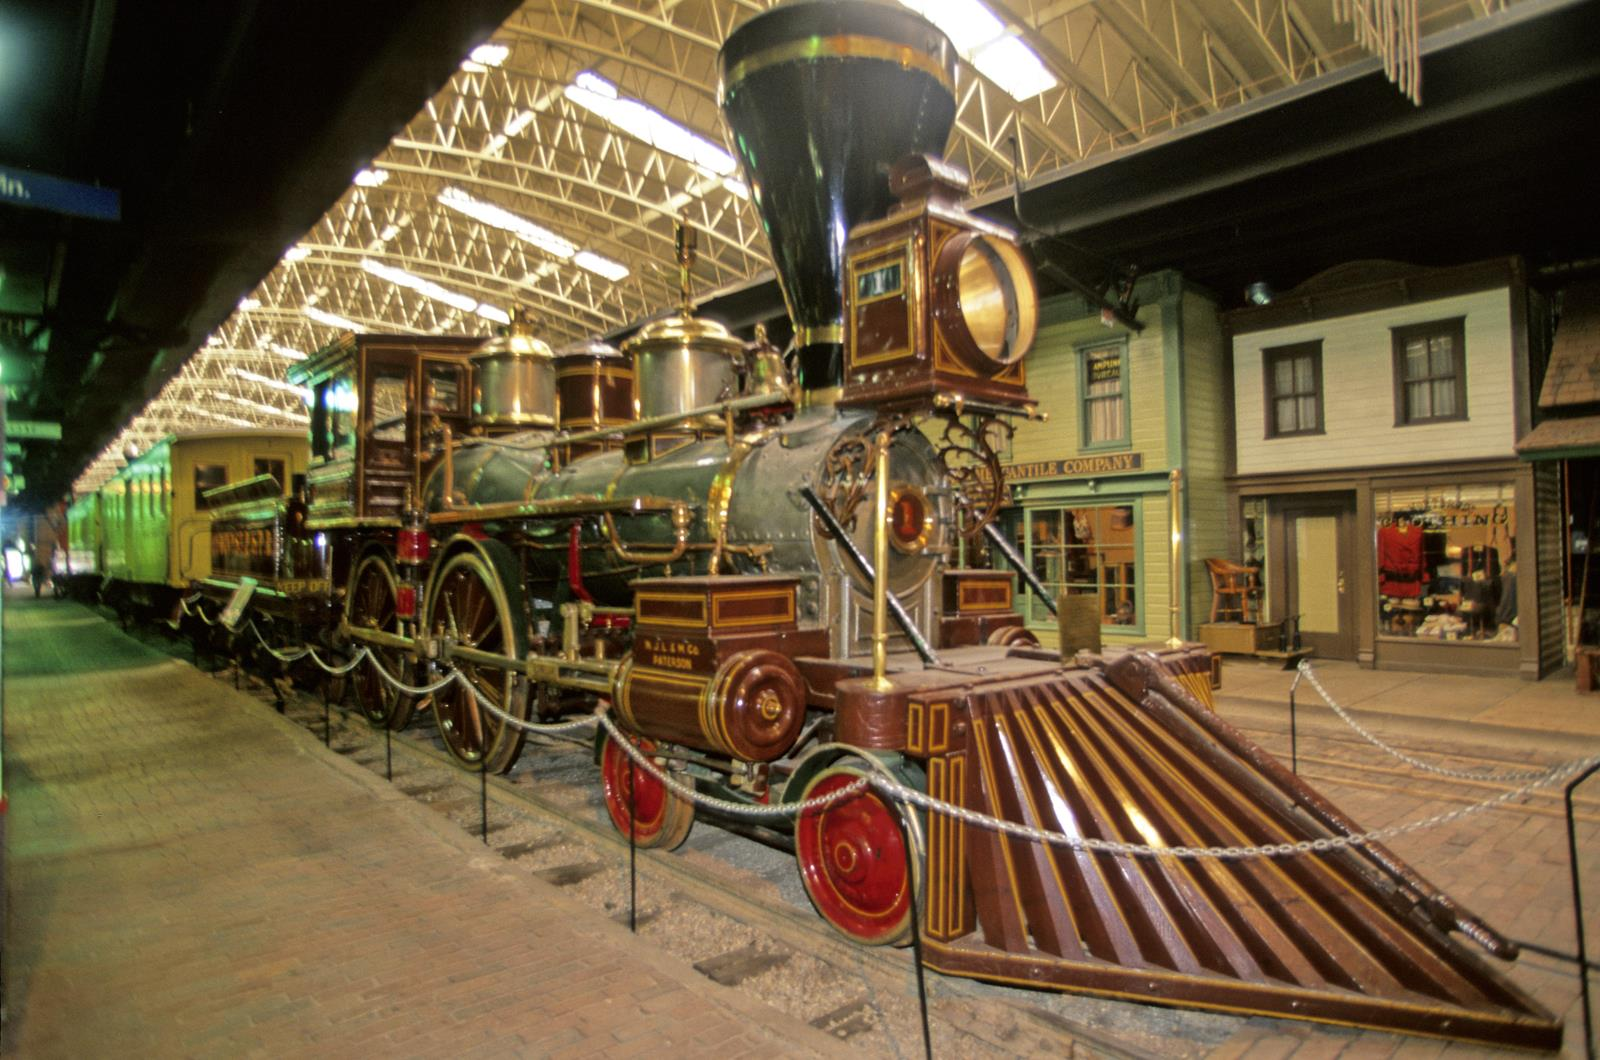 Lake Superior Railroad Museum in Duluth